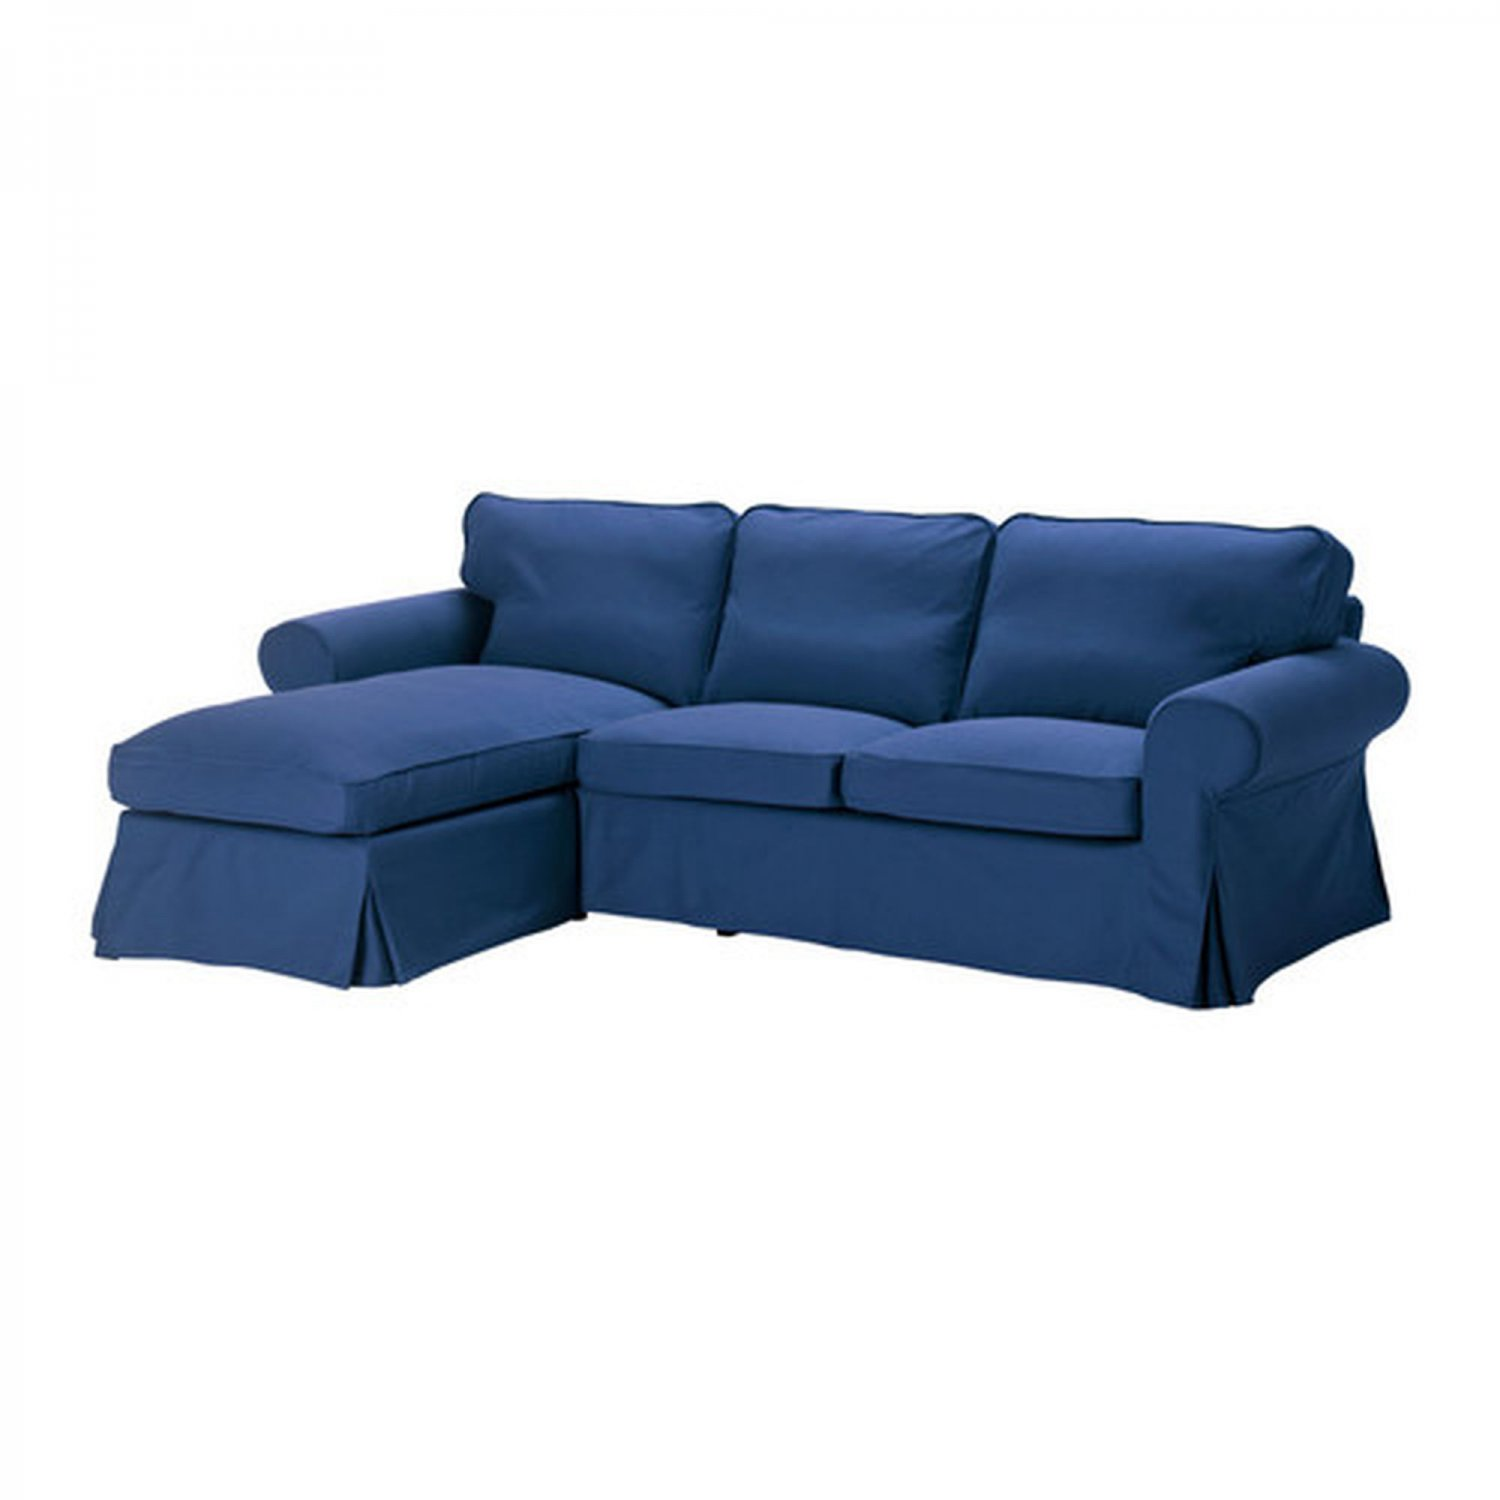 Ikea ektorp loveseat with chaise lounge cover slipcover idemo blue Couch and loveseat covers